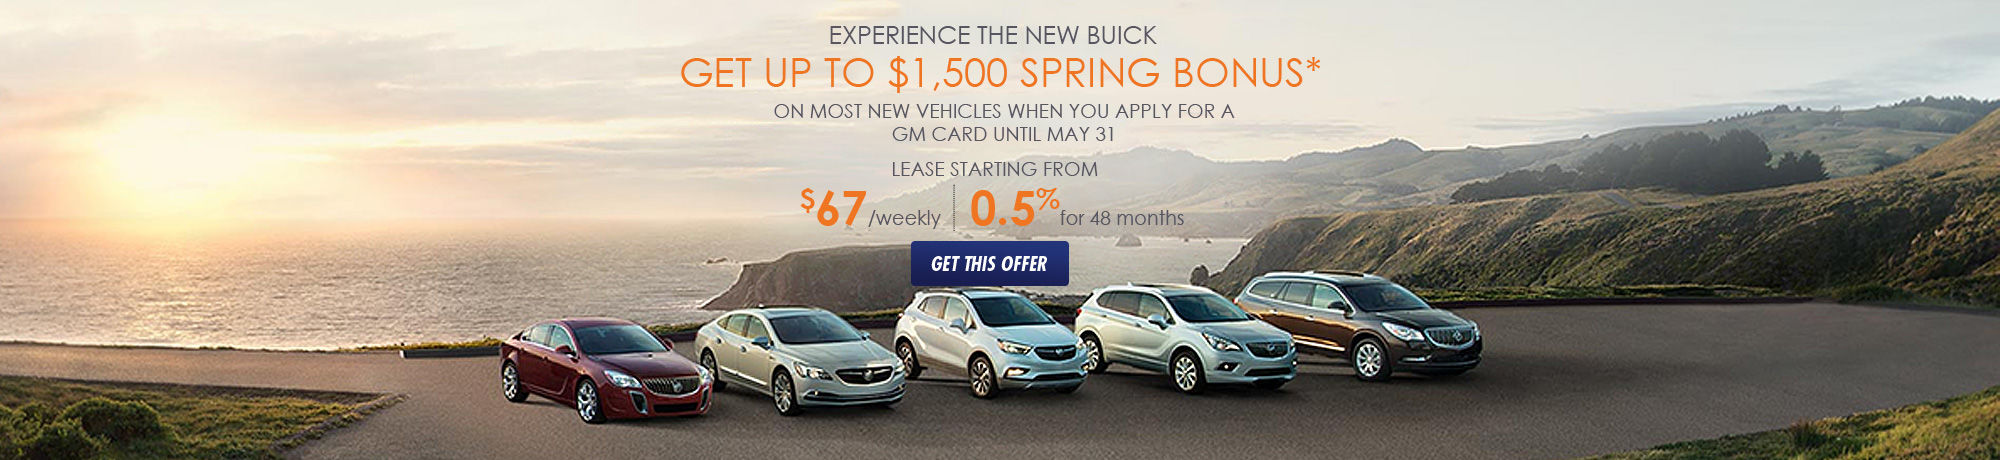 Experience the New Buick event!